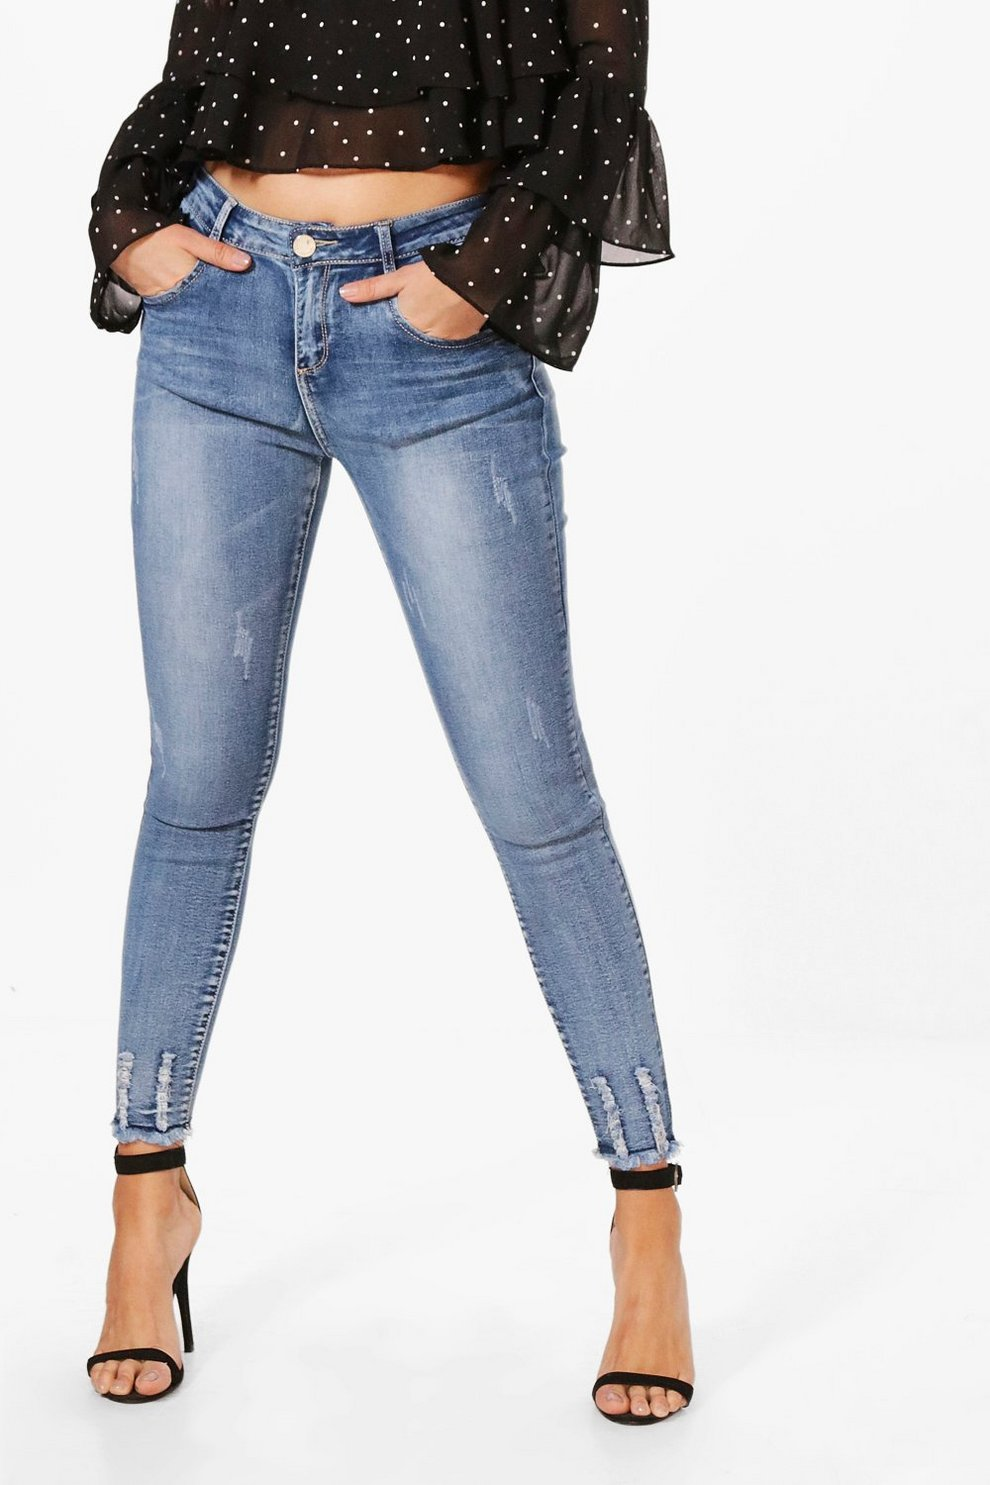 Jean Haute Boohoo Taille Effet Déchiré Ourlet Skinny qqfApF